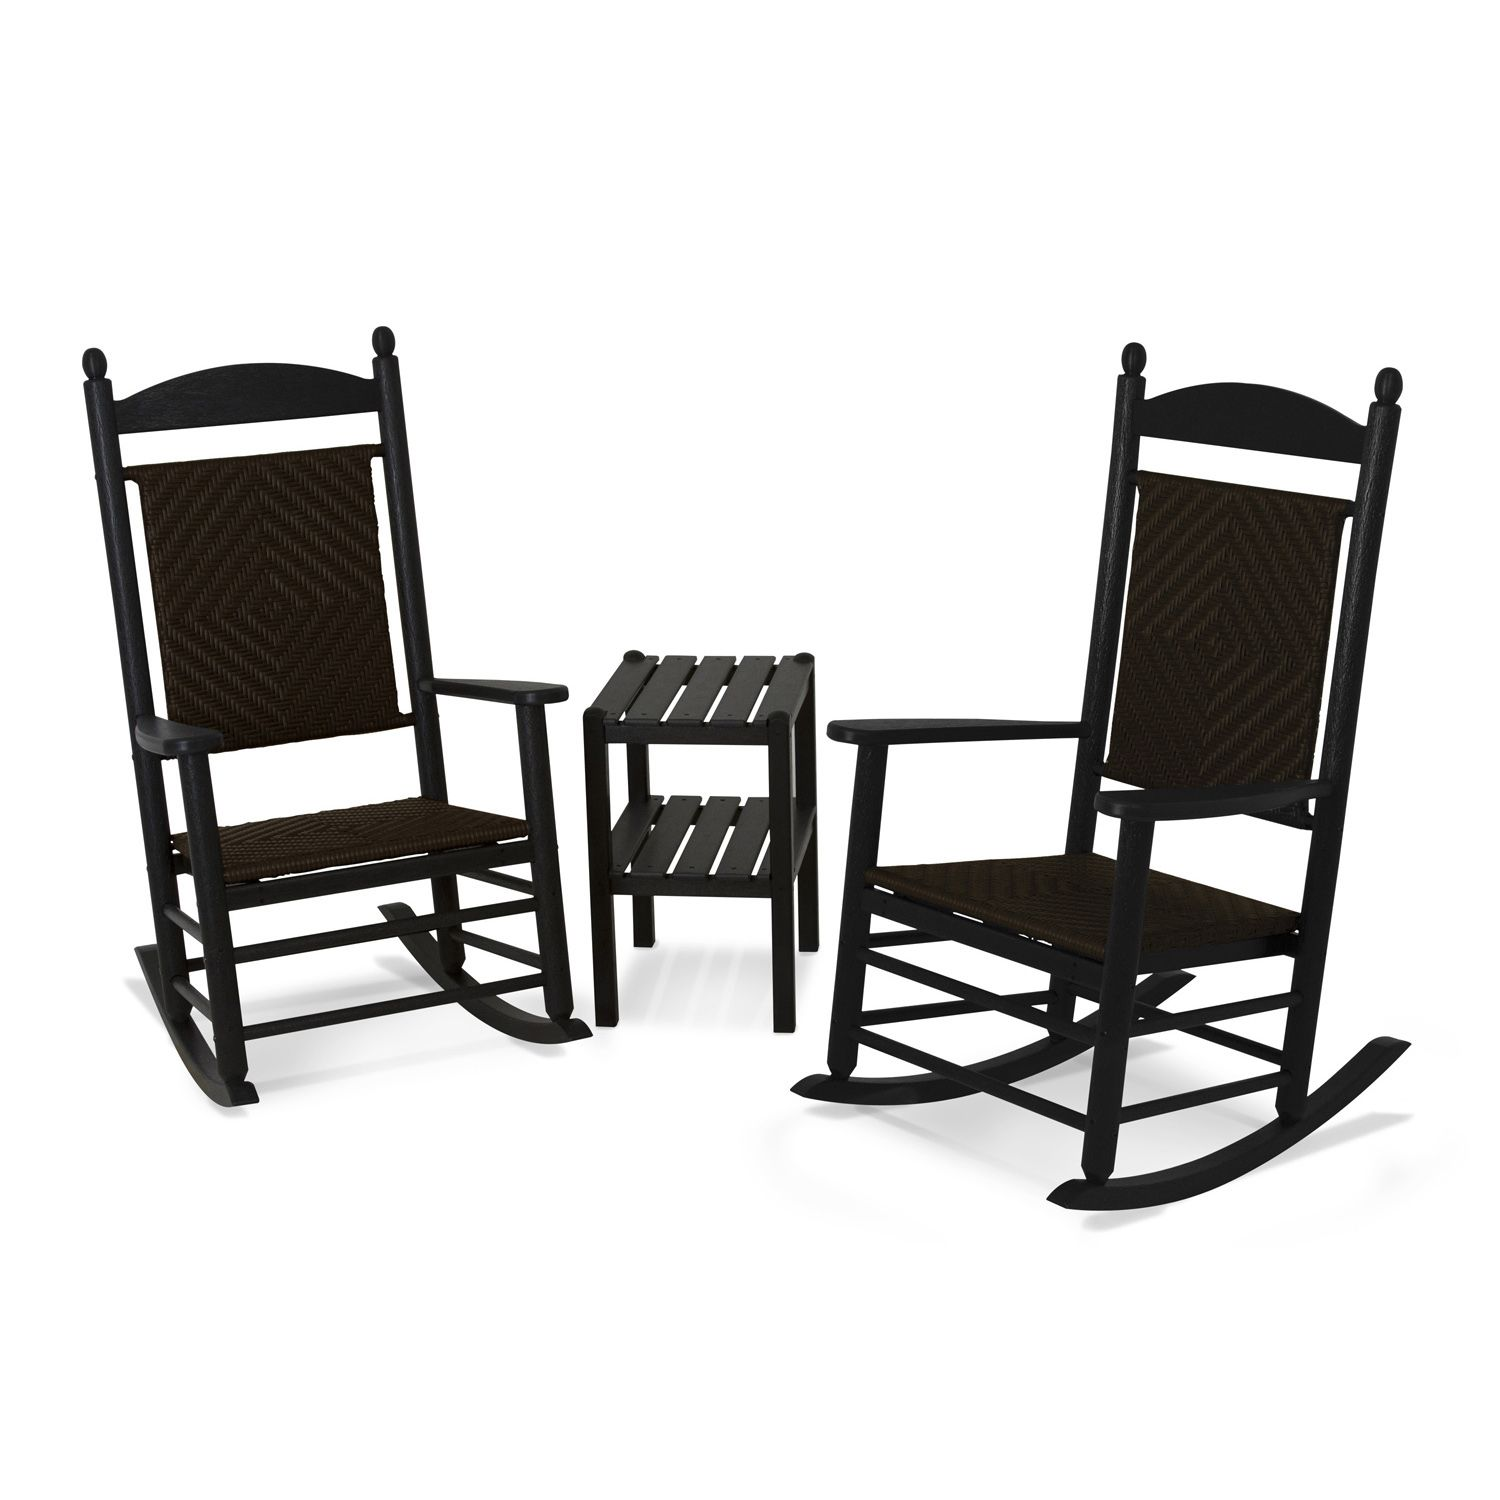 POLYWOOD® 3 Piece Jefferson Woven Outdoor Rocking Chair U0026 Side Table Set